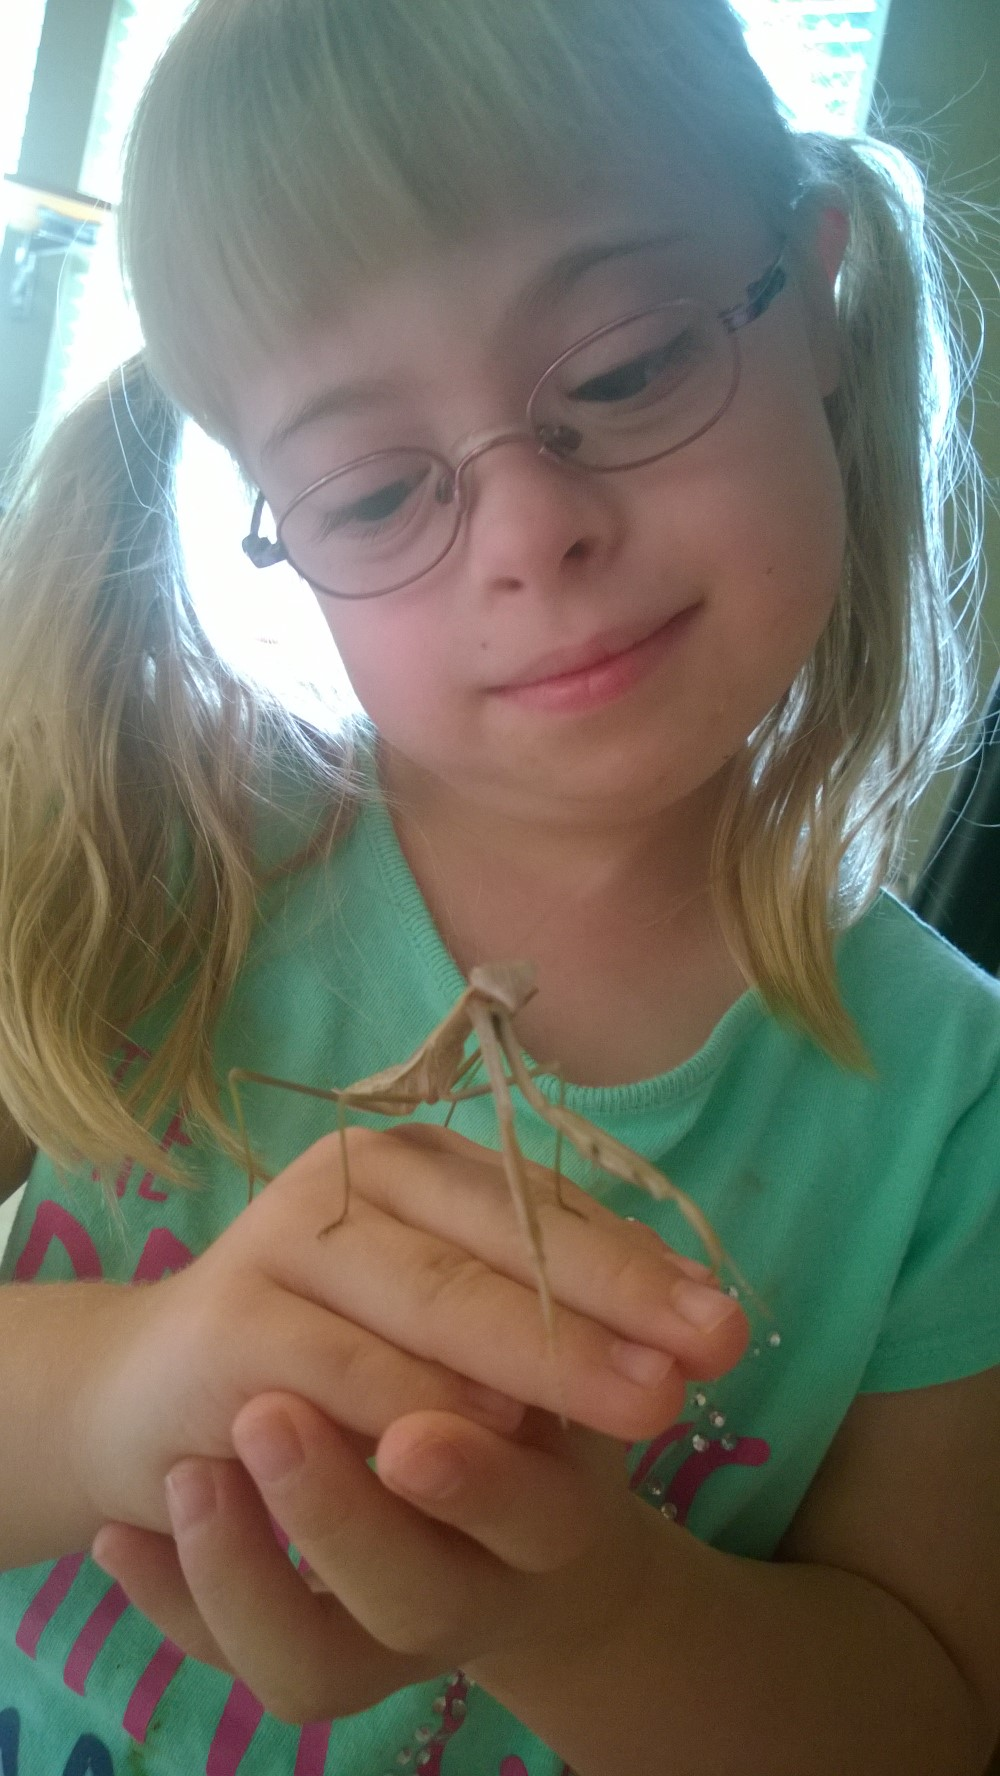 Totally harmless, both the kid and the mantis.